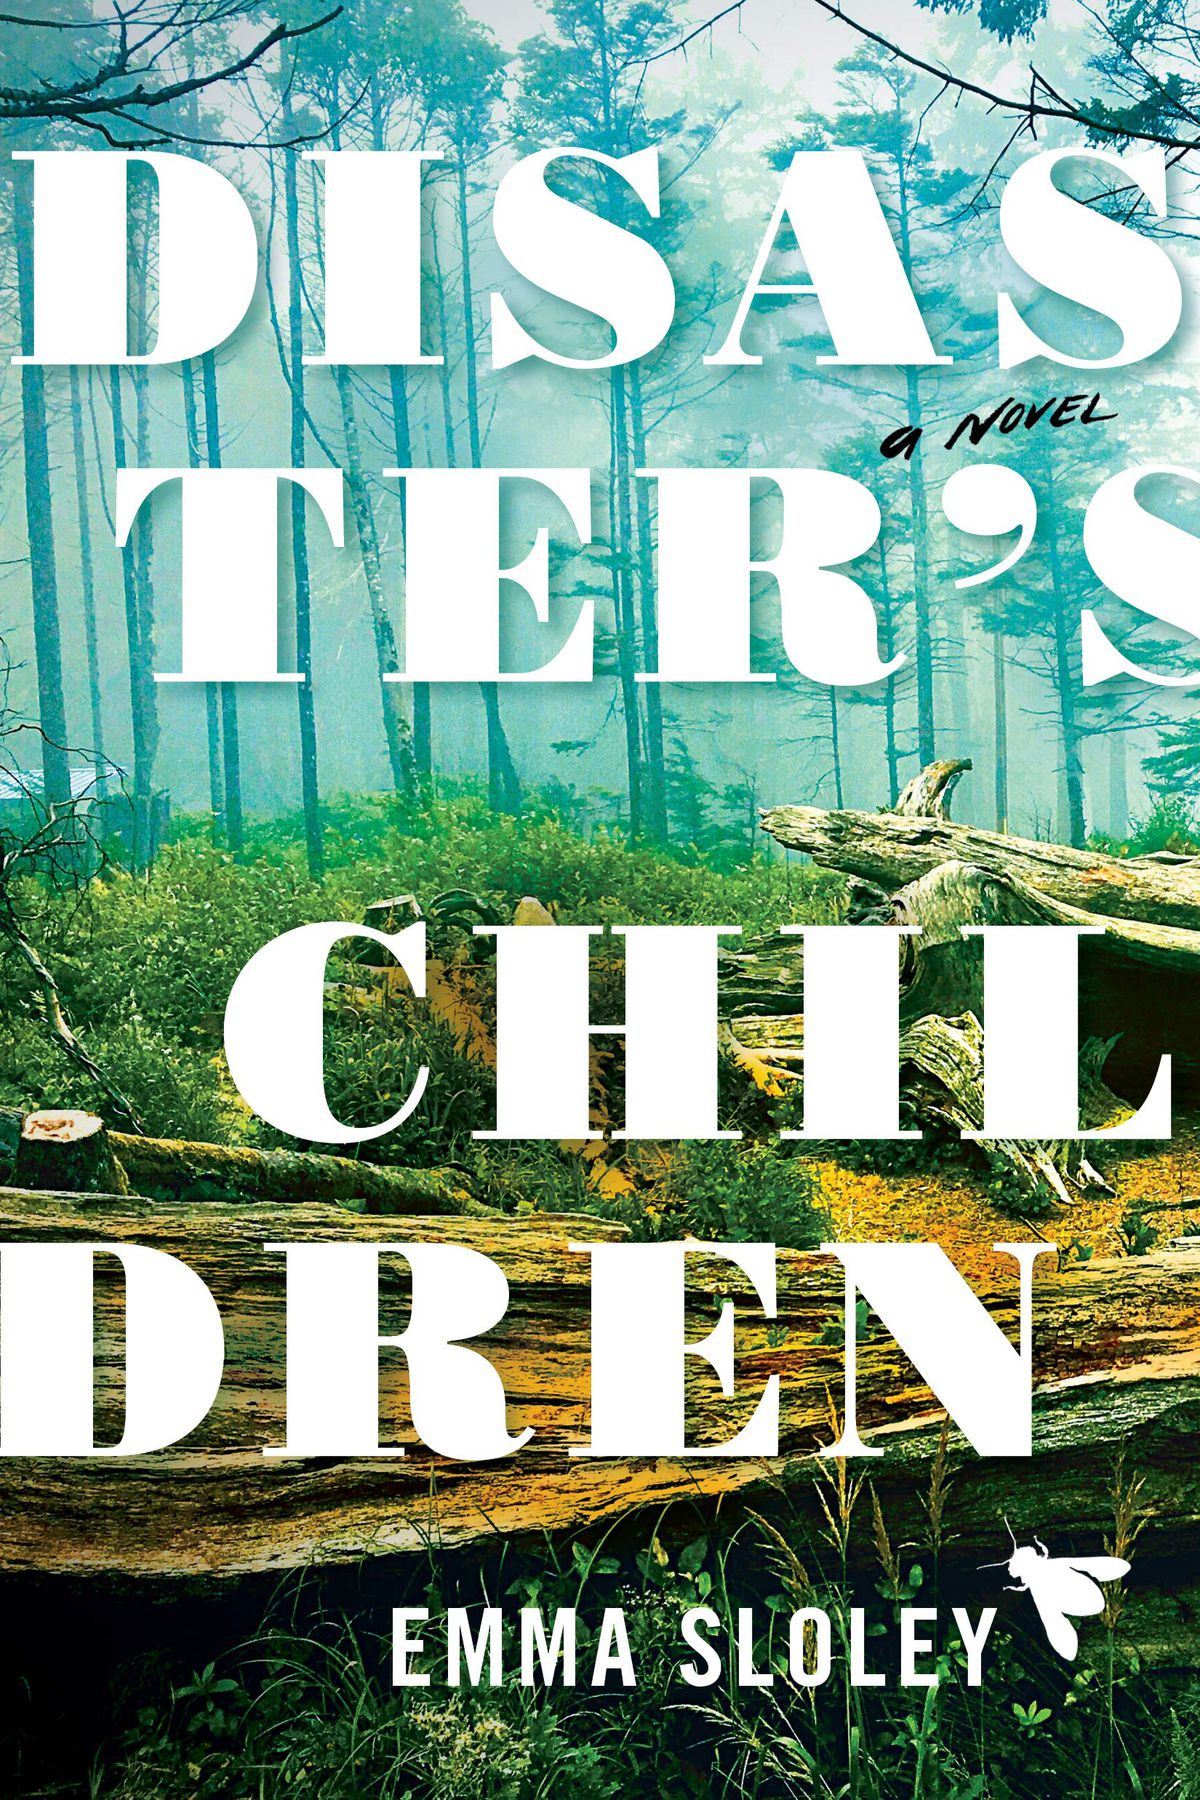 the cover for disaster's children which has the title in bold against a verdant forest